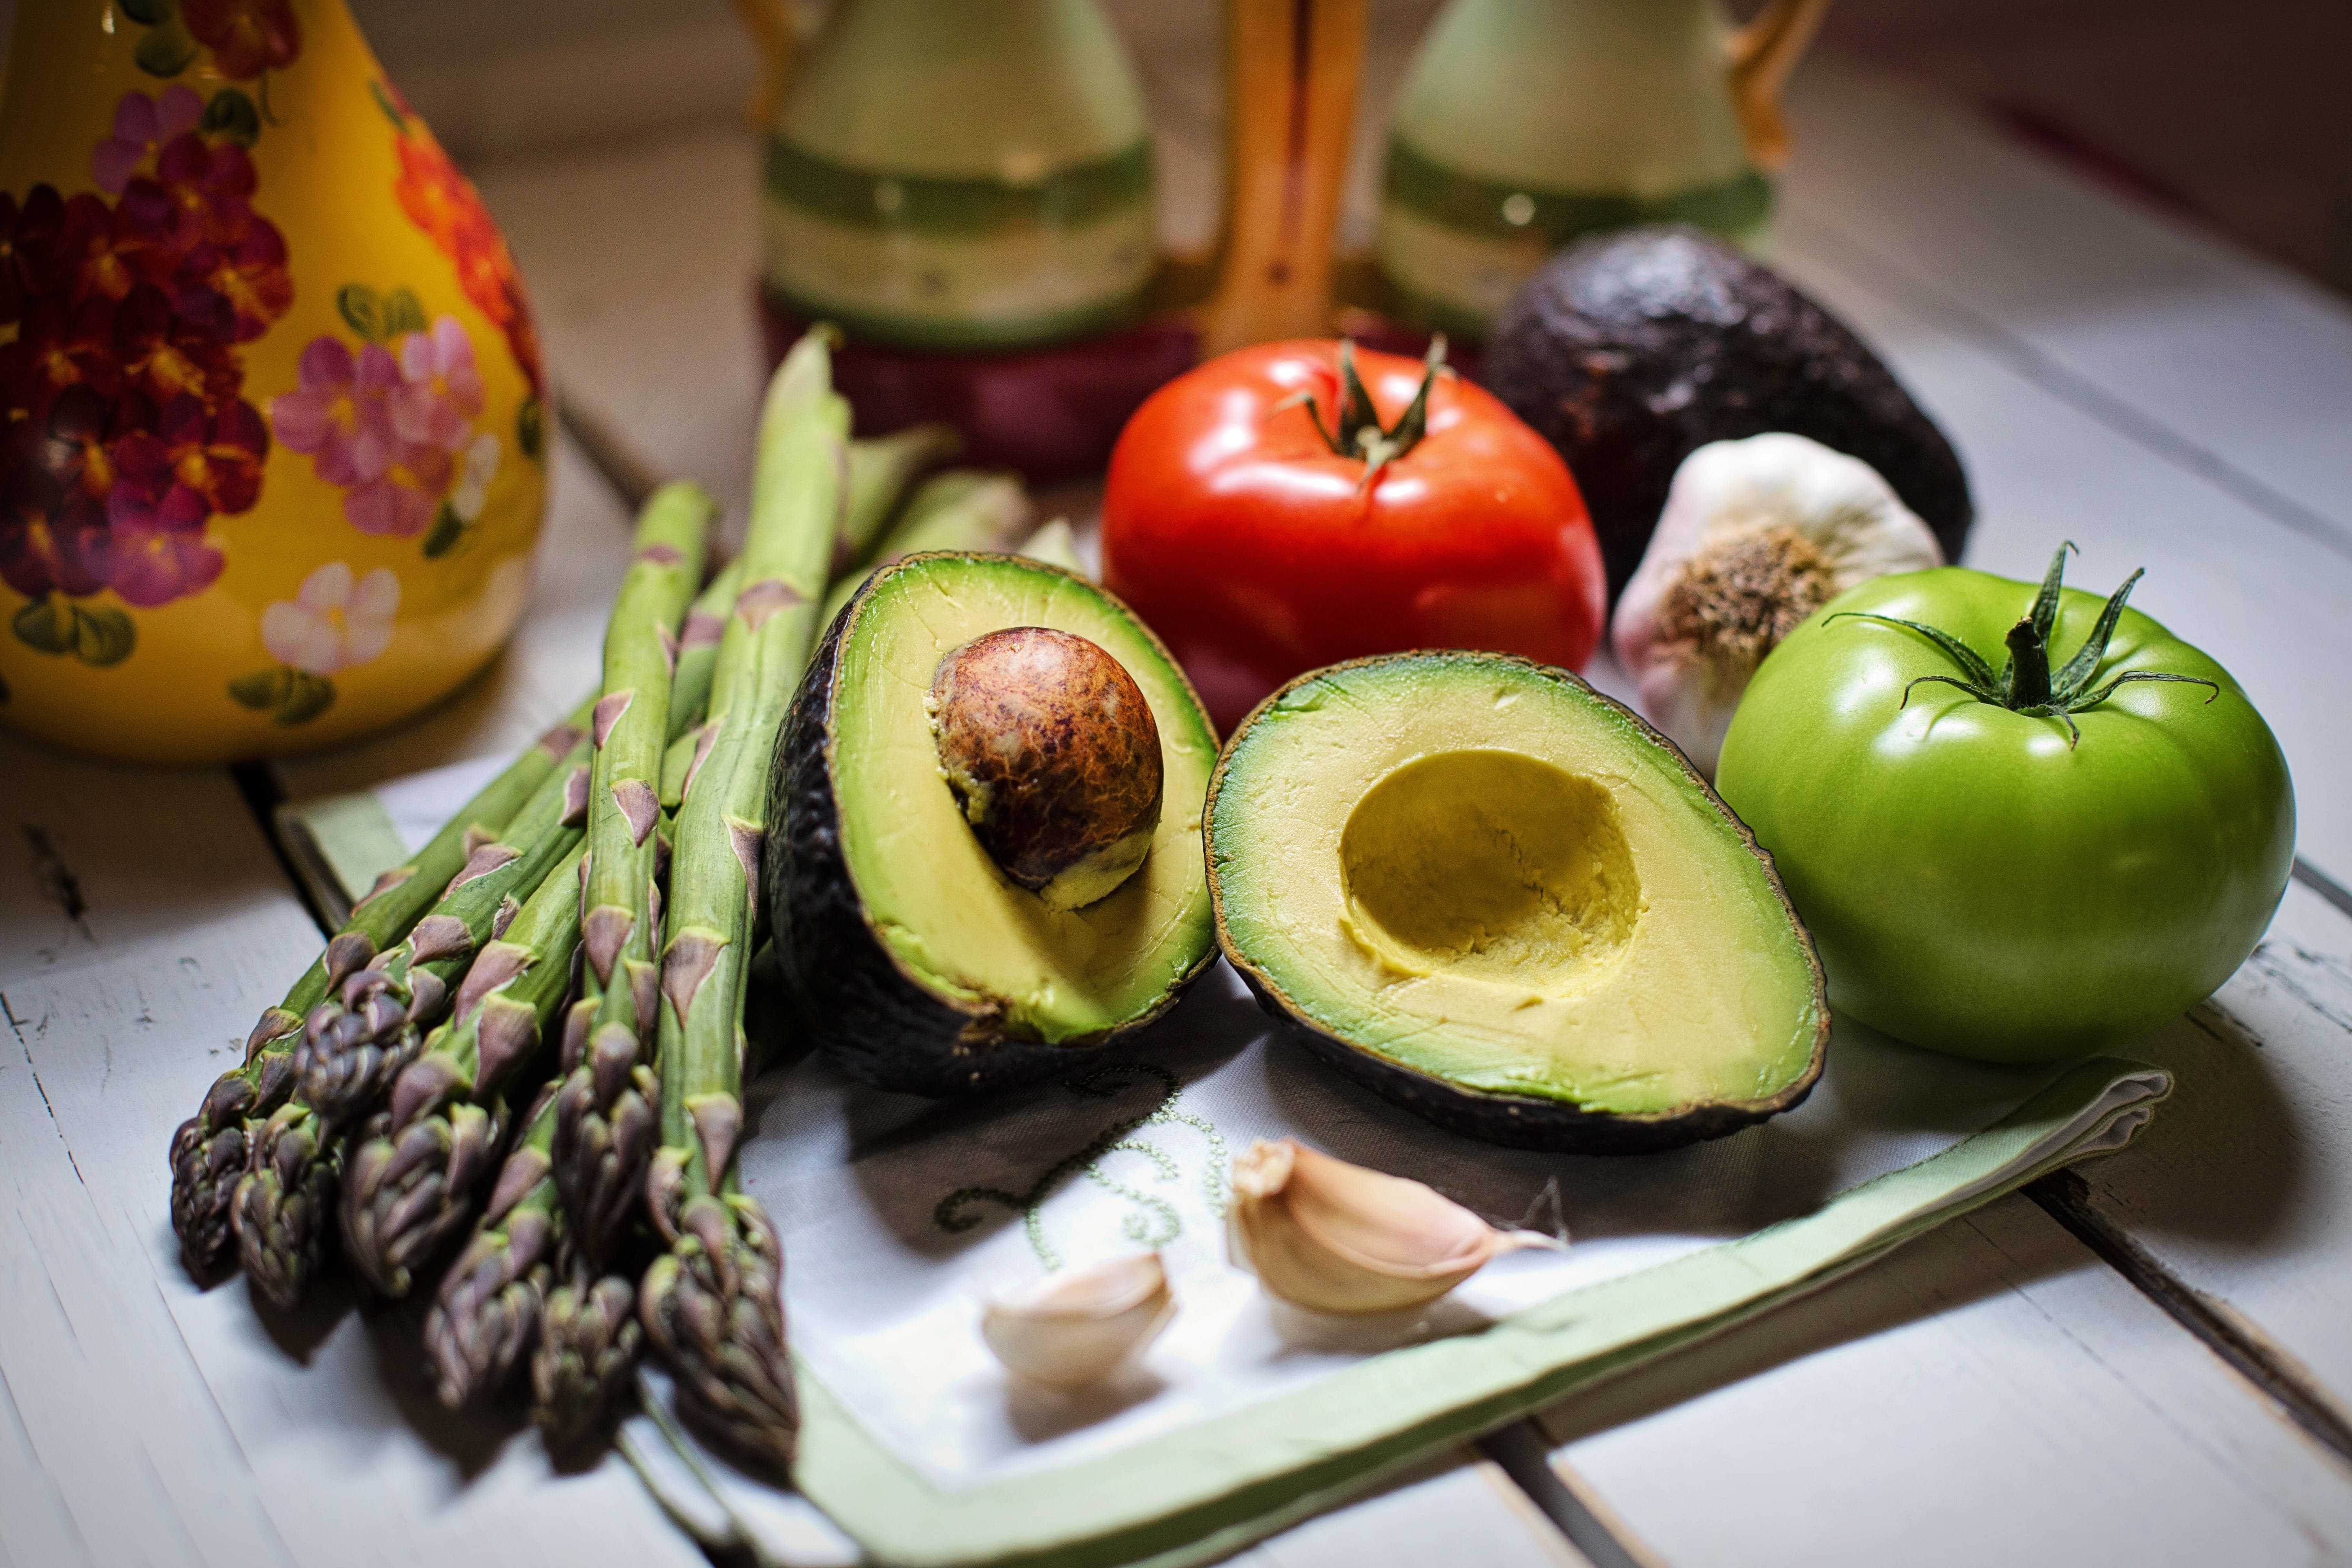 Free stock photo of healthy, vegetables, tomatoes, avocado